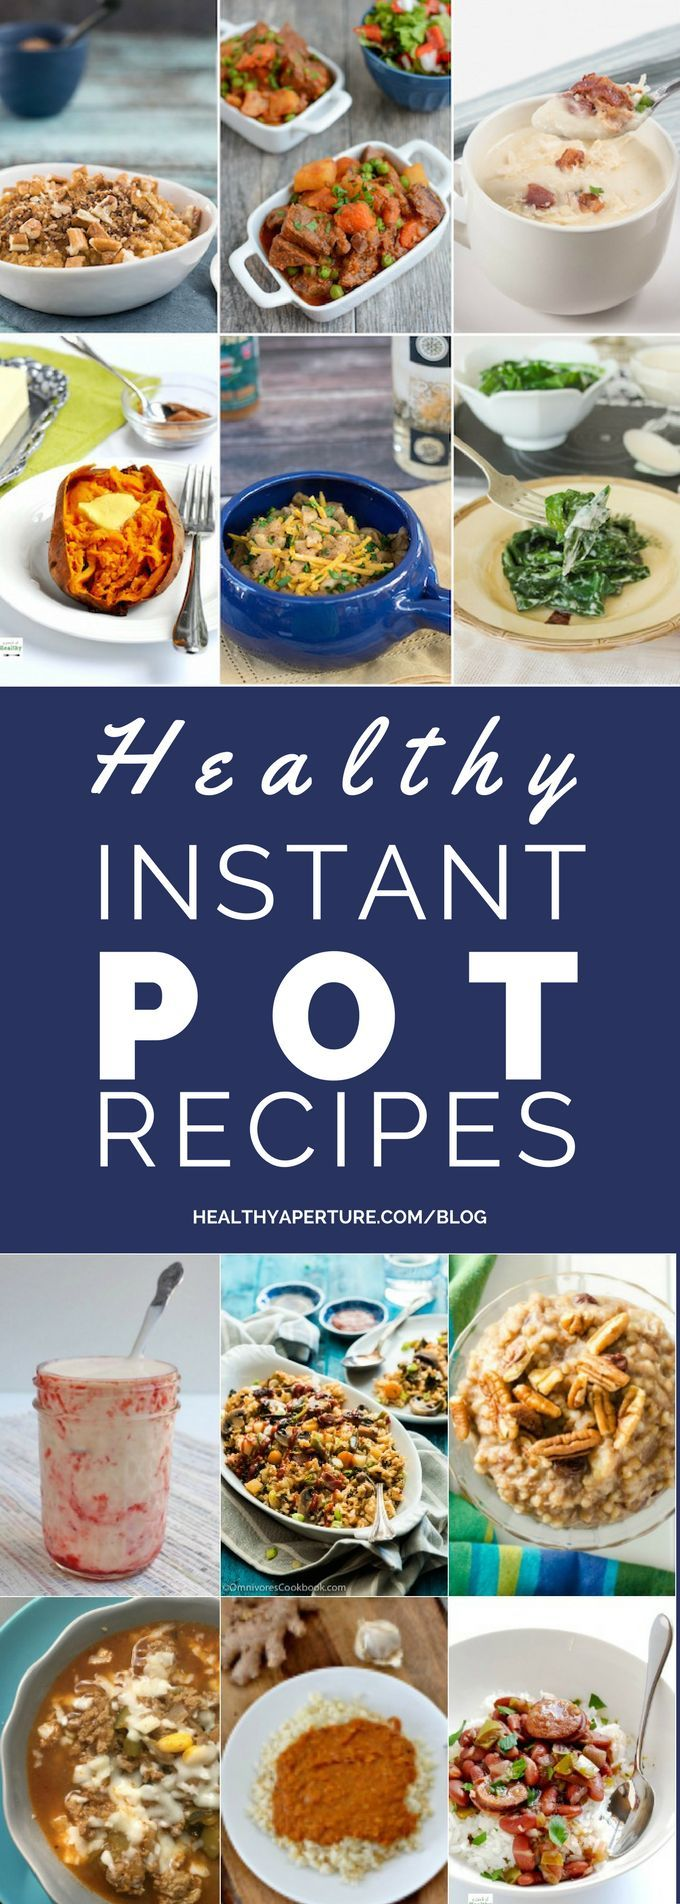 105 best instant pot images on pinterest crock crockpot and healthy instant pot recipes forumfinder Image collections